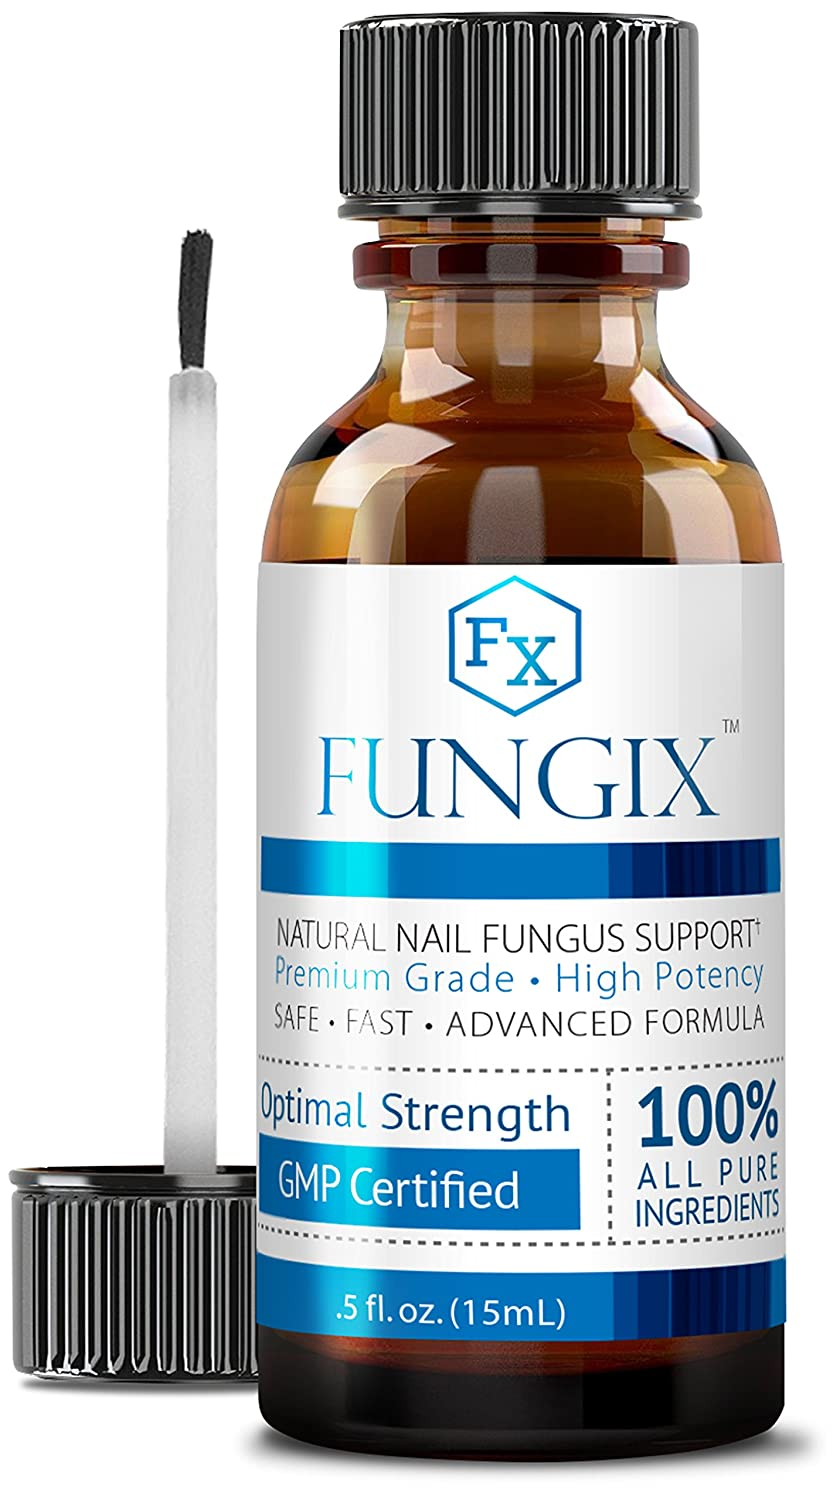 Amazon.com : Fungix - Antifungal Nail Treatment for Toenails ...